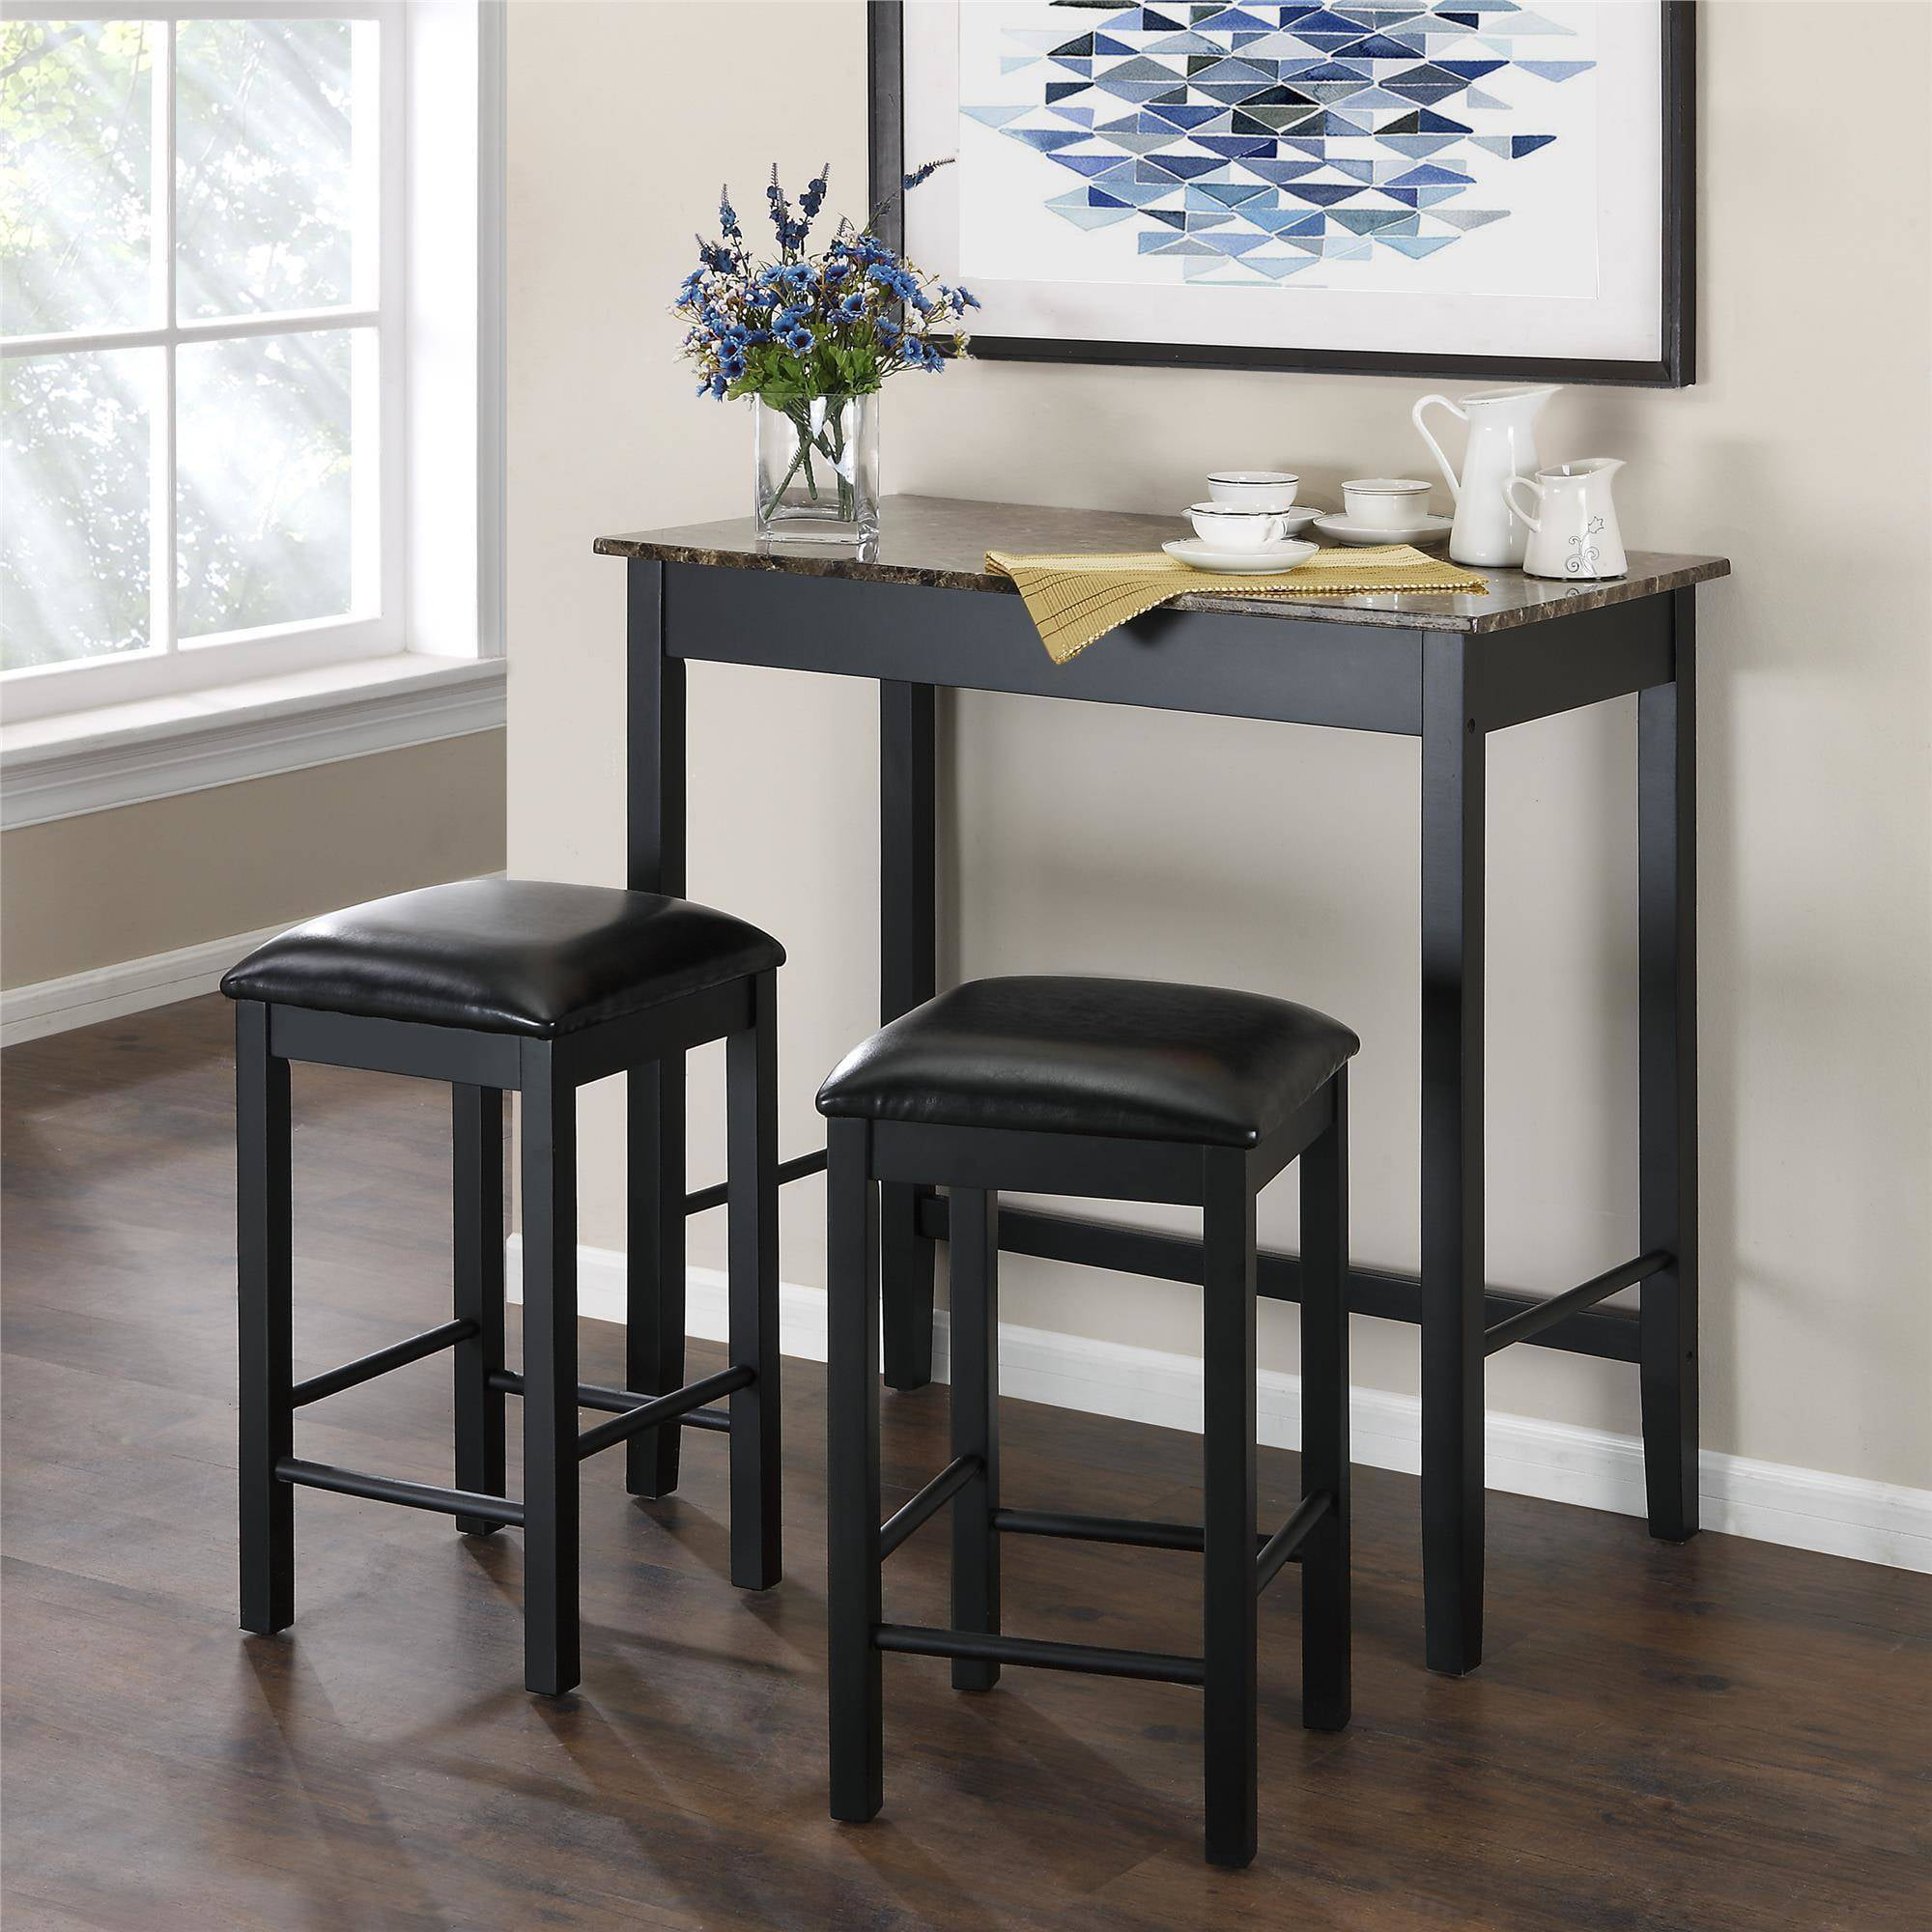 Dorel Living Devyn 3 Piece Faux Marble Pub Dining Set, Black   Walmart.com